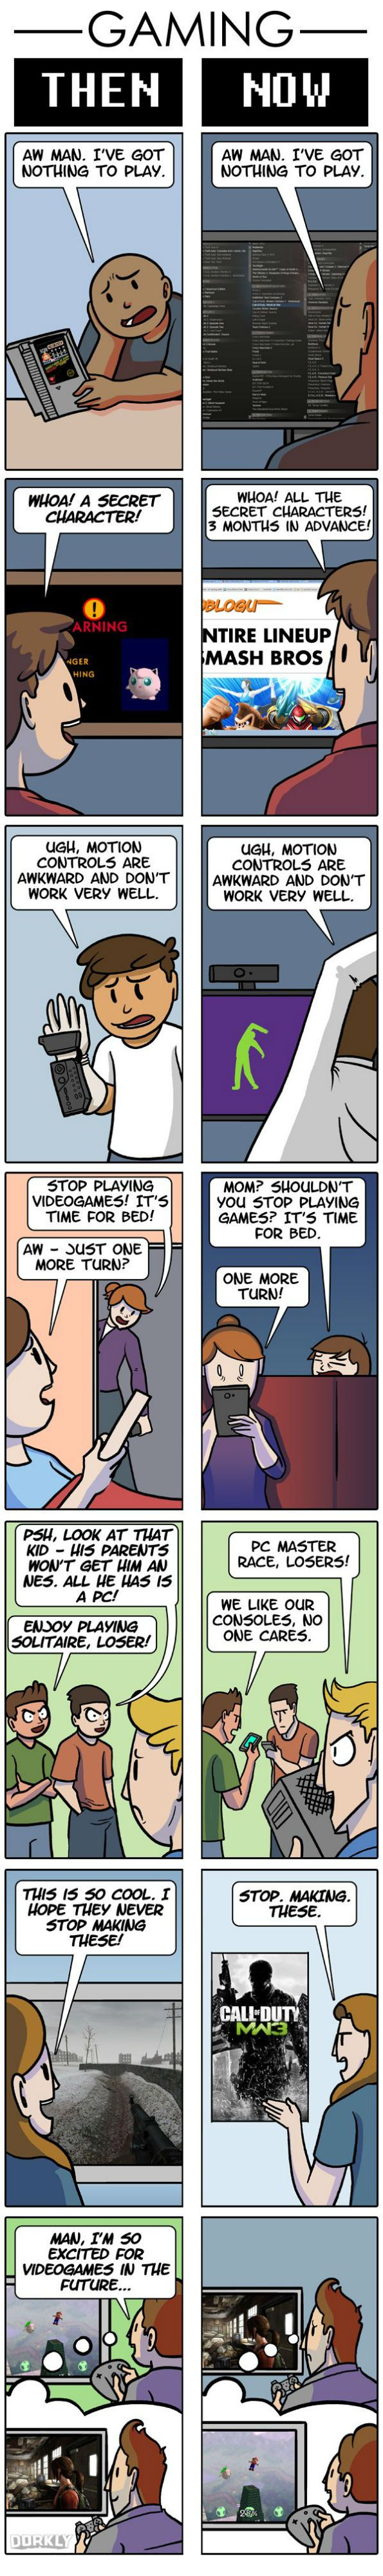 Gaming: then vs now http://amzn.to/2pfClkD